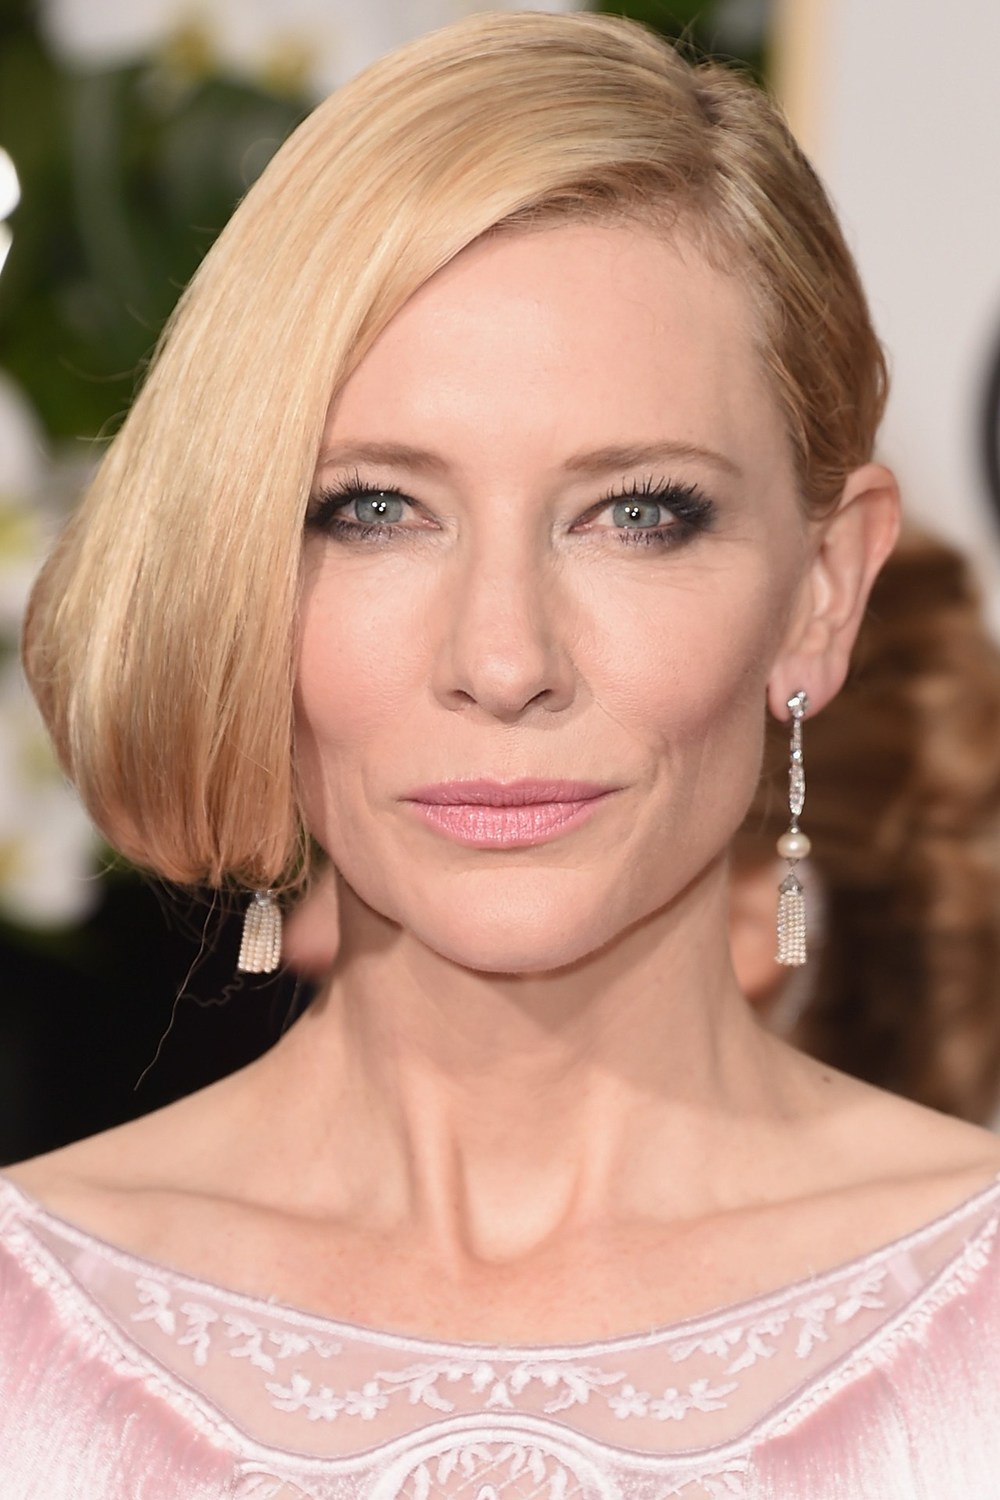 Cate Blanchett wore her hair parted low on one side, whilst her make-up look comprised pale pink lips, softly smoky eyes and illuminated skin.